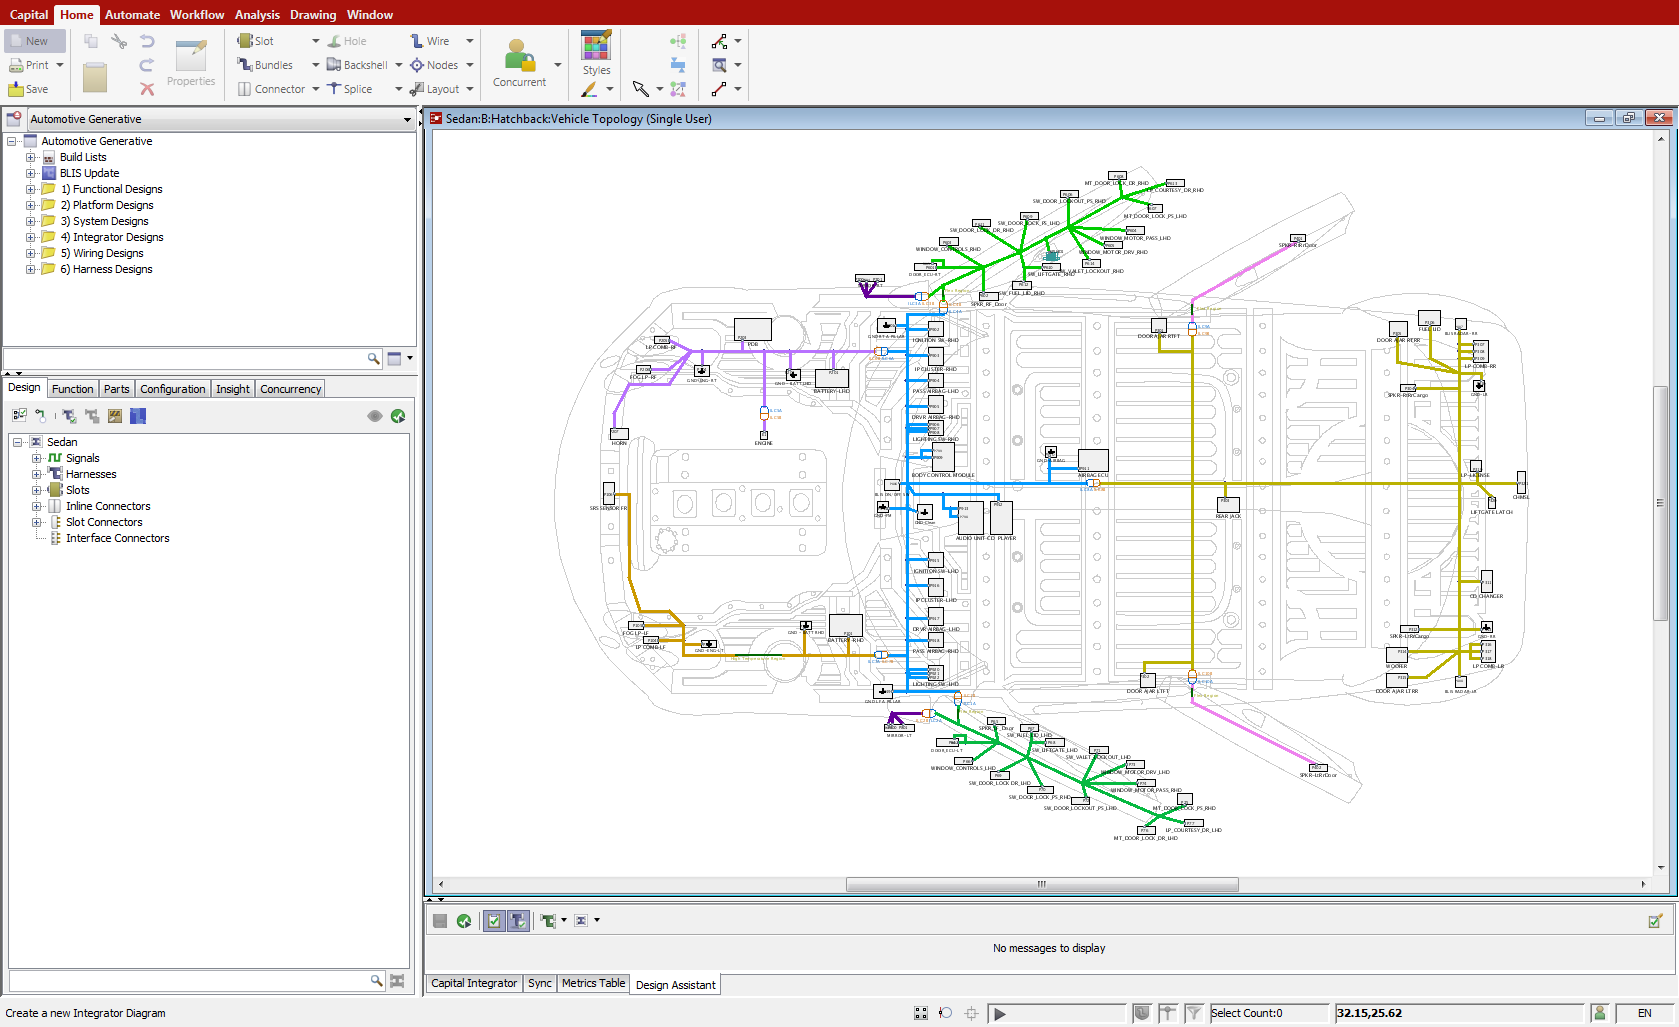 CapitalIntegrator E4720331?q=80&w=1600&fit=max capital integrator electrical design automation mentor graphics wire harness automation at crackthecode.co